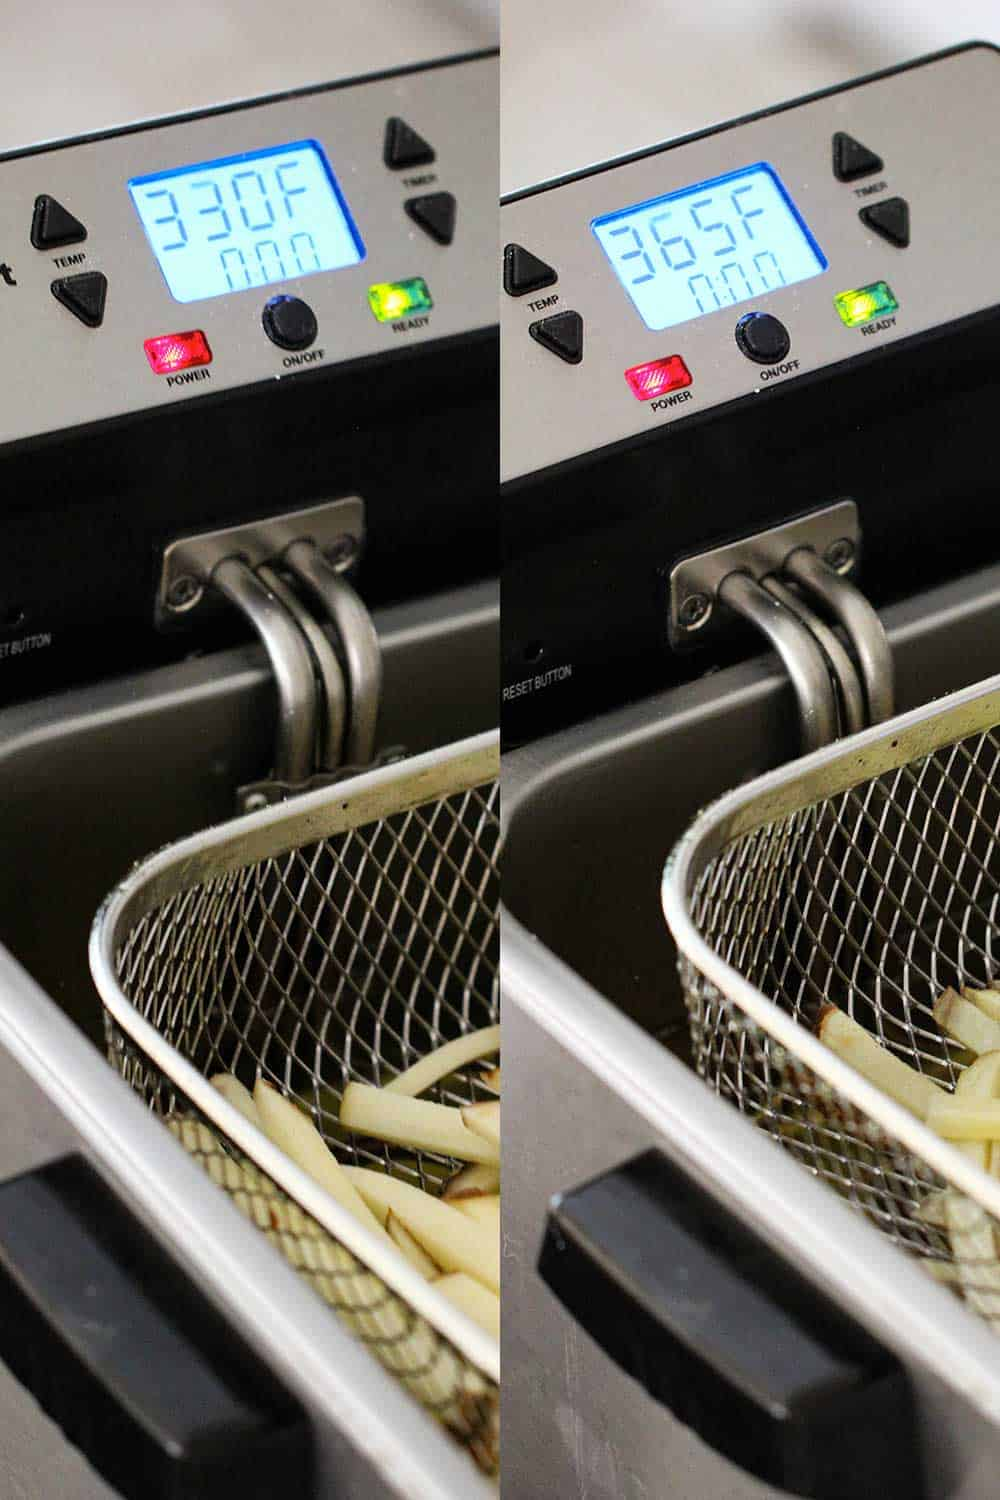 Side-by-side view of a deep fryer holding French fries, at different temperatures.